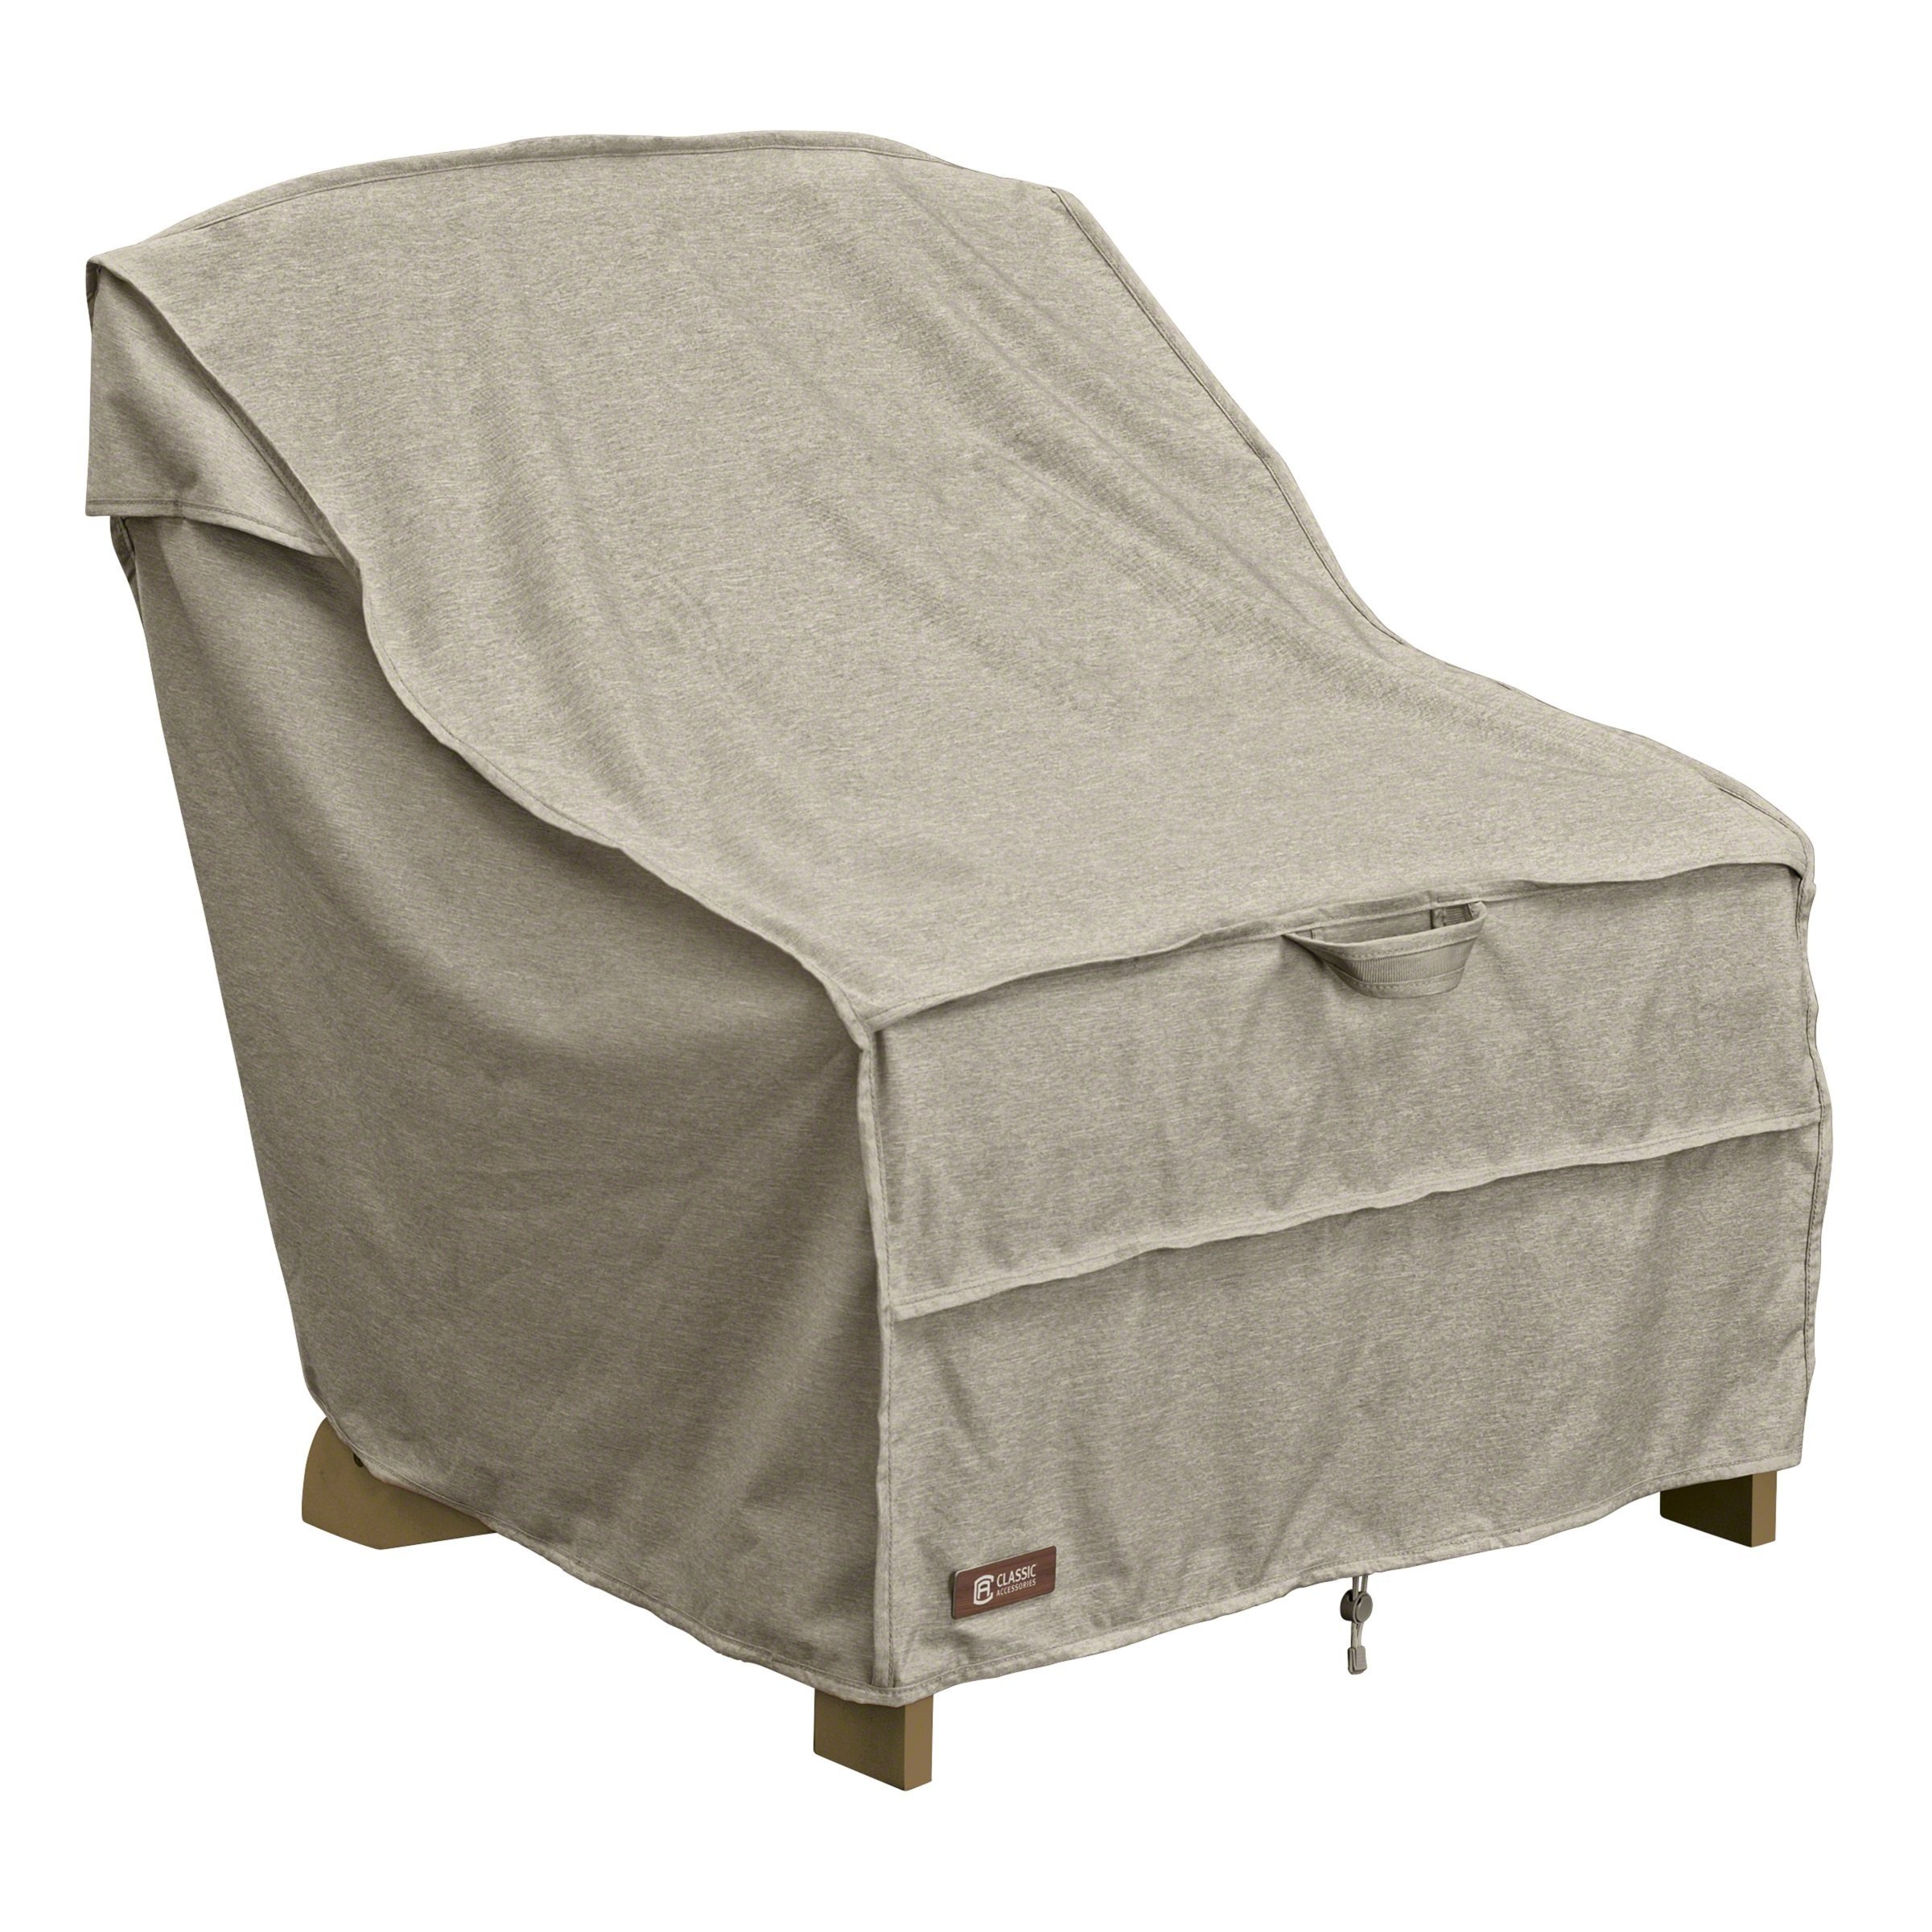 Classic Accessories Montlake FadeSafe Adirondack Patio Chair Cover - Heavy Duty Outdoor Furniture Cover with Waterproof Backing (55-671-016701-RT)